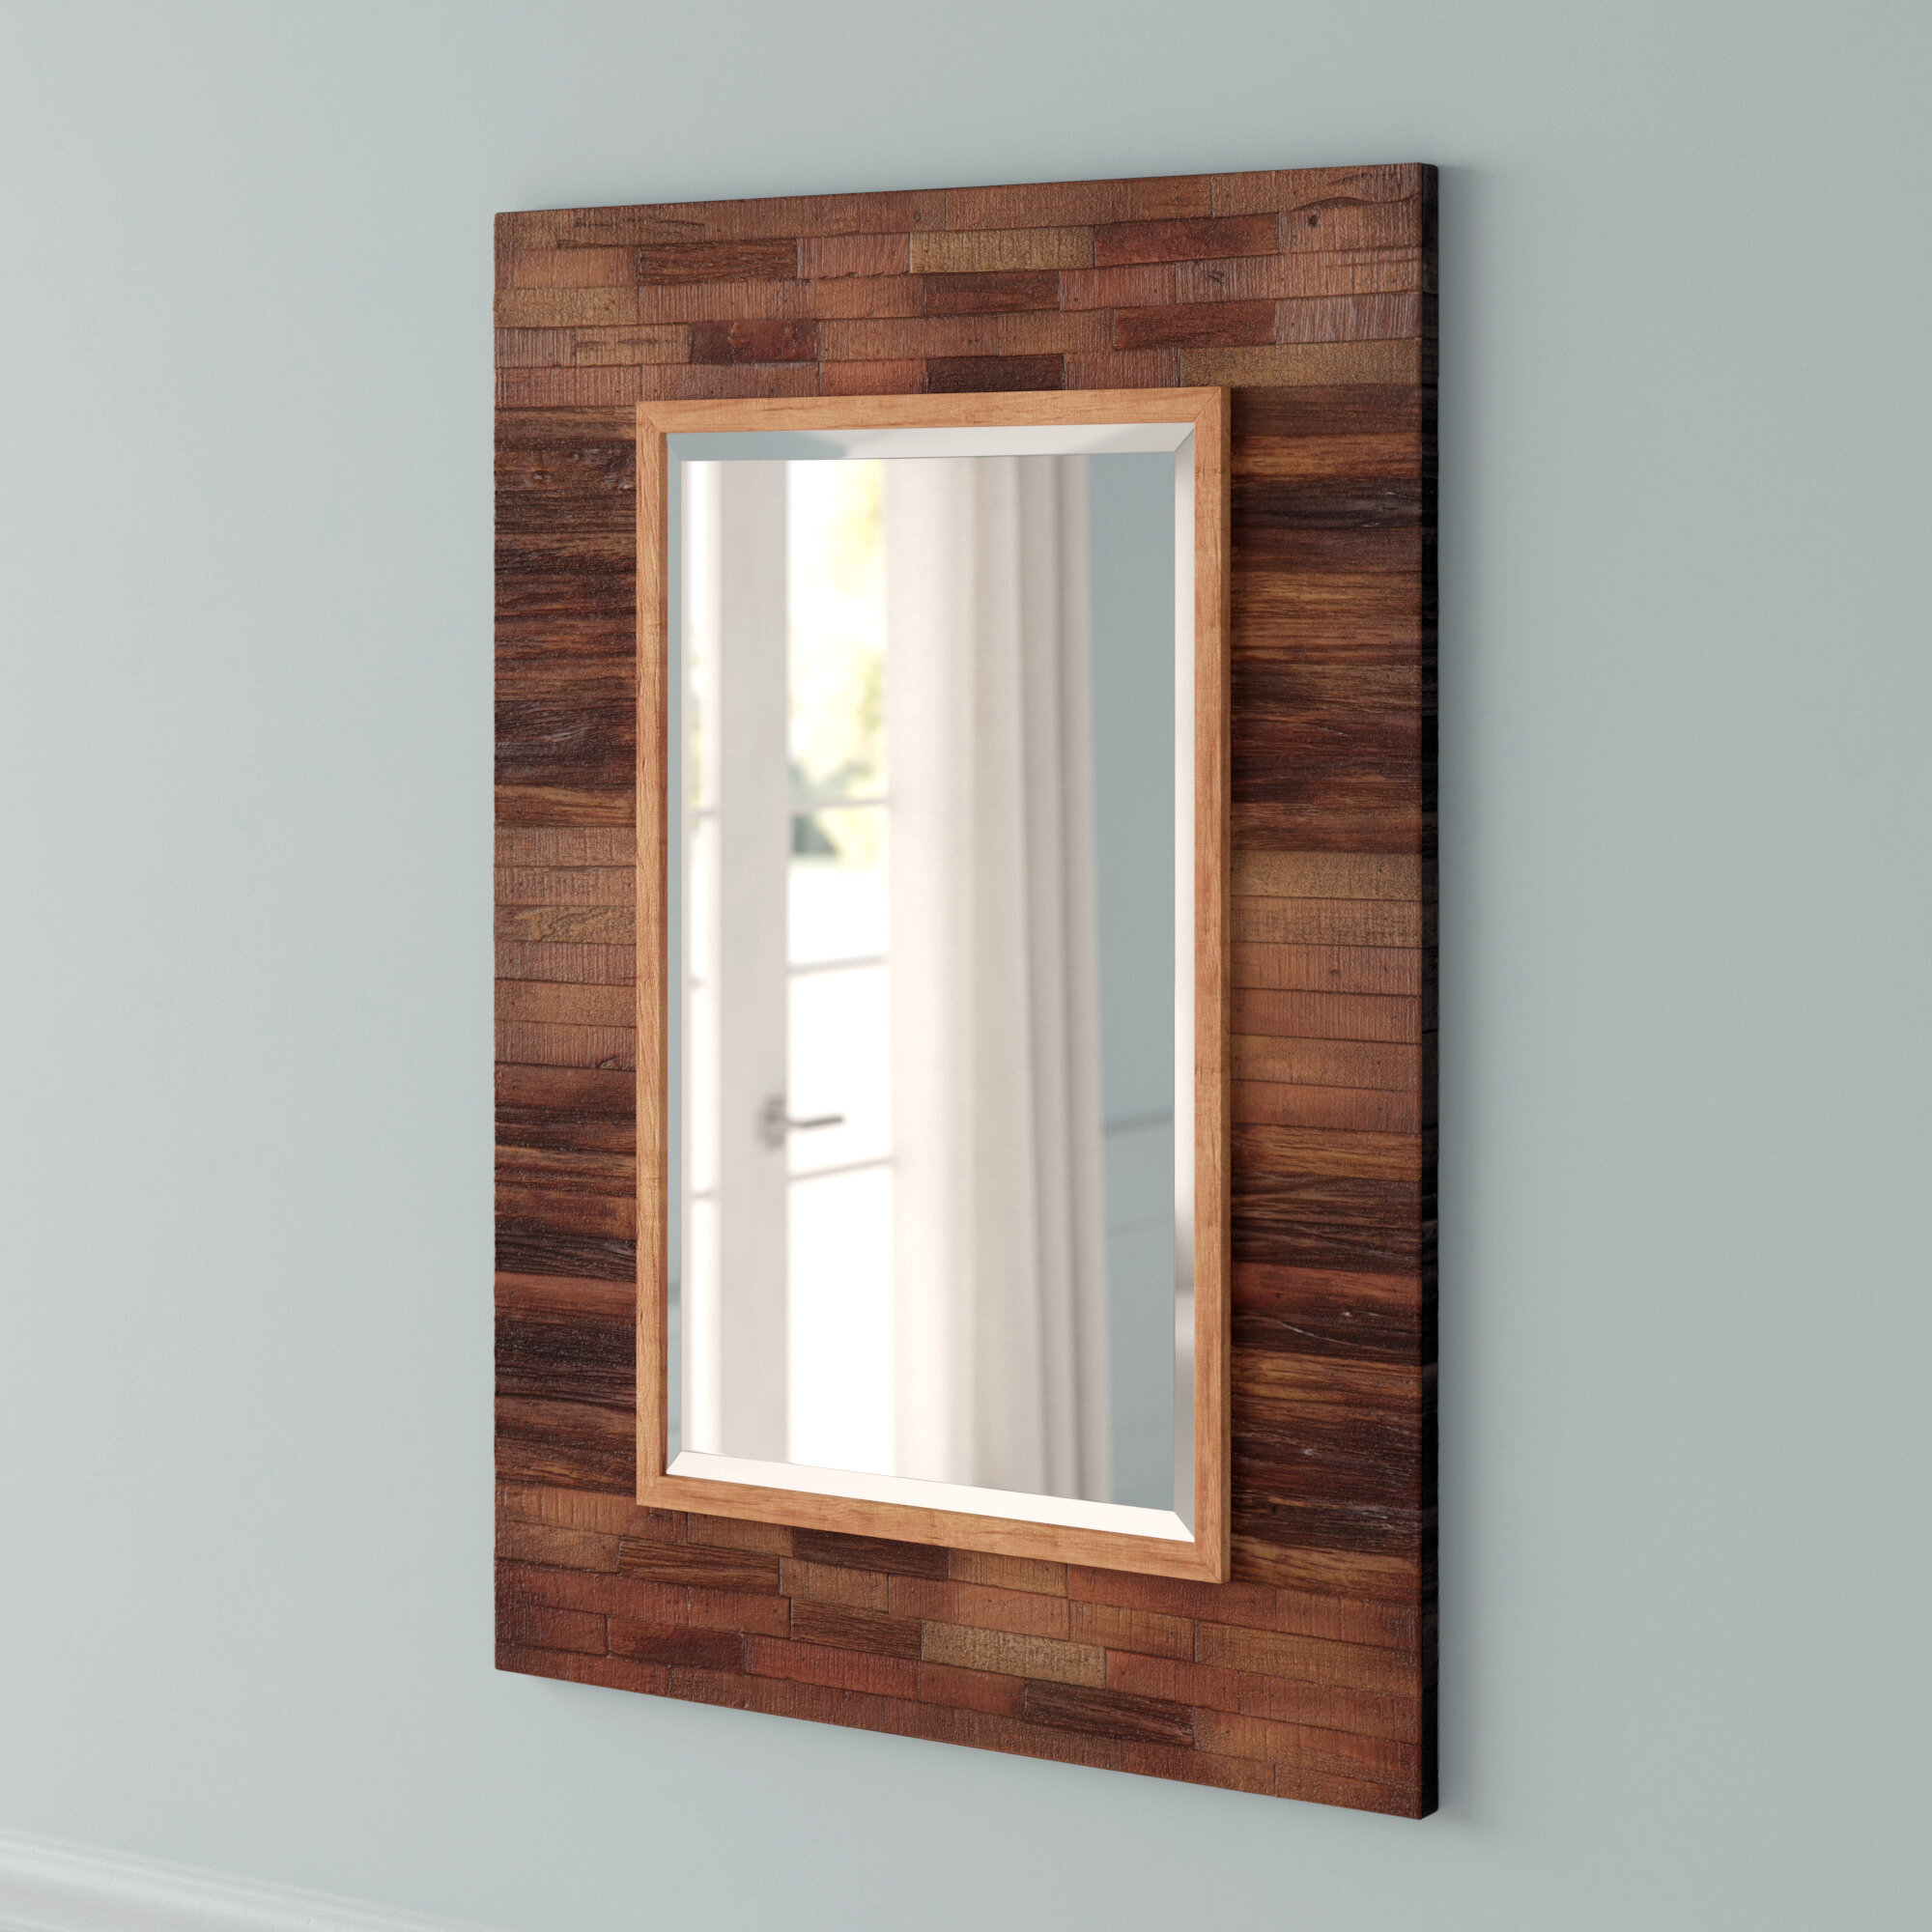 Saylor Wall Mirror | Joss & Main Pertaining To Booth Reclaimed Wall Mirrors Accent (Image 17 of 20)